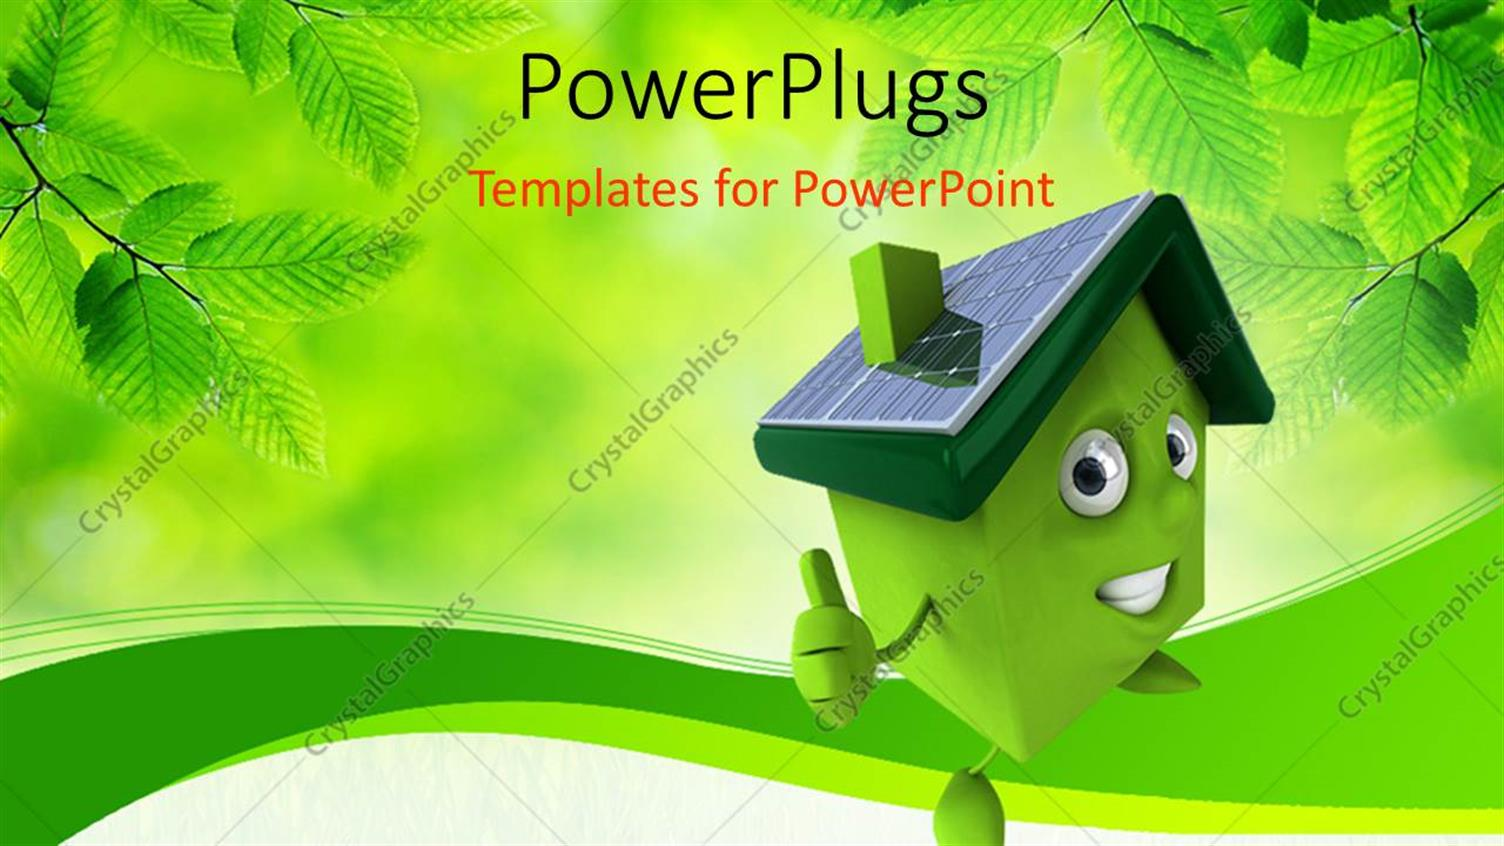 PowerPoint Template Displaying Depiction of Green Smiley House Over Green Background with Fresh Leaves